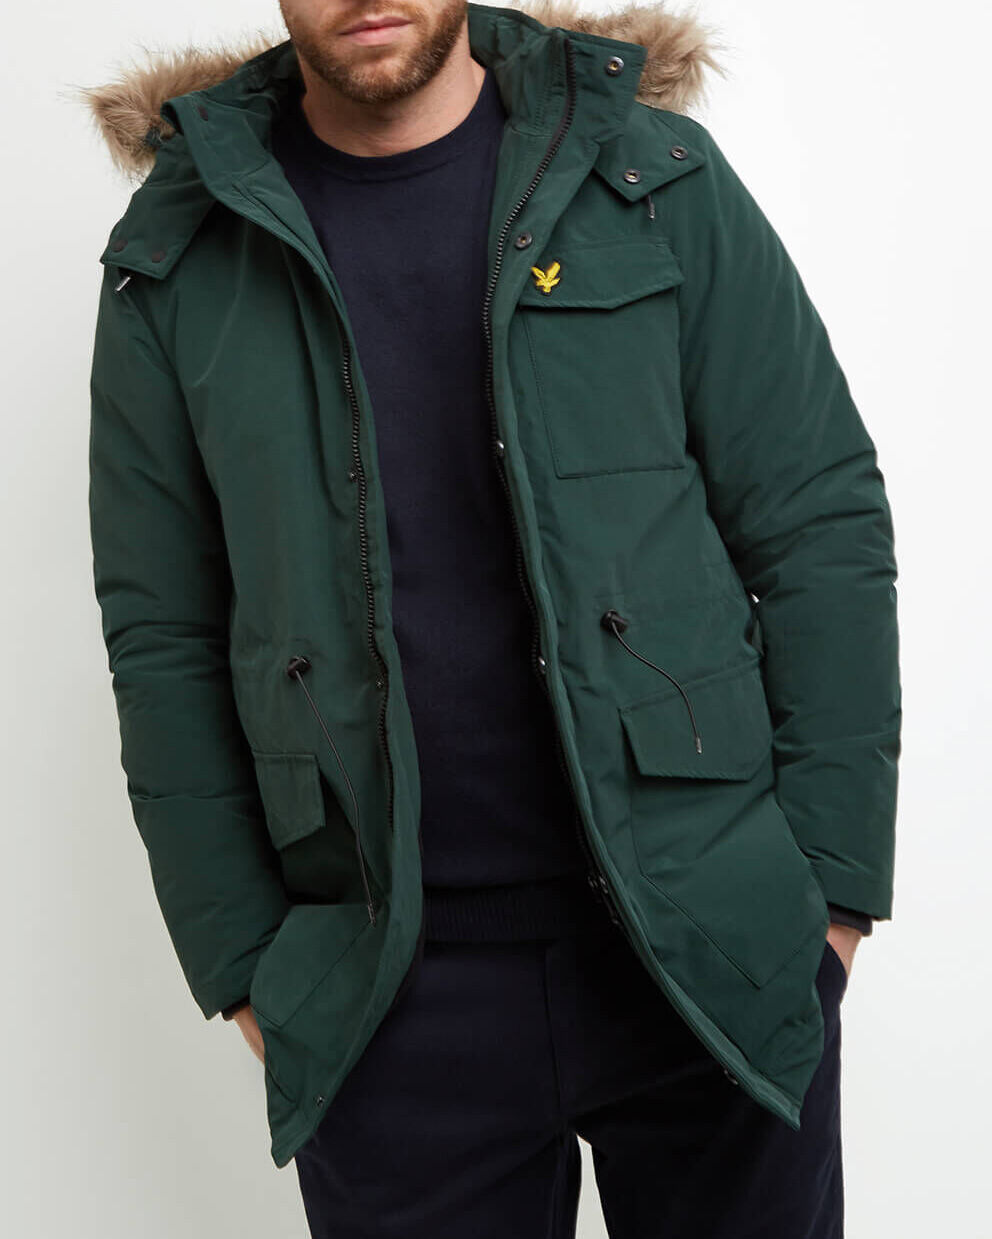 Lyle-and-Scott-Mens-Winterweight-Microfleece-Lined-Parka thumbnail 12